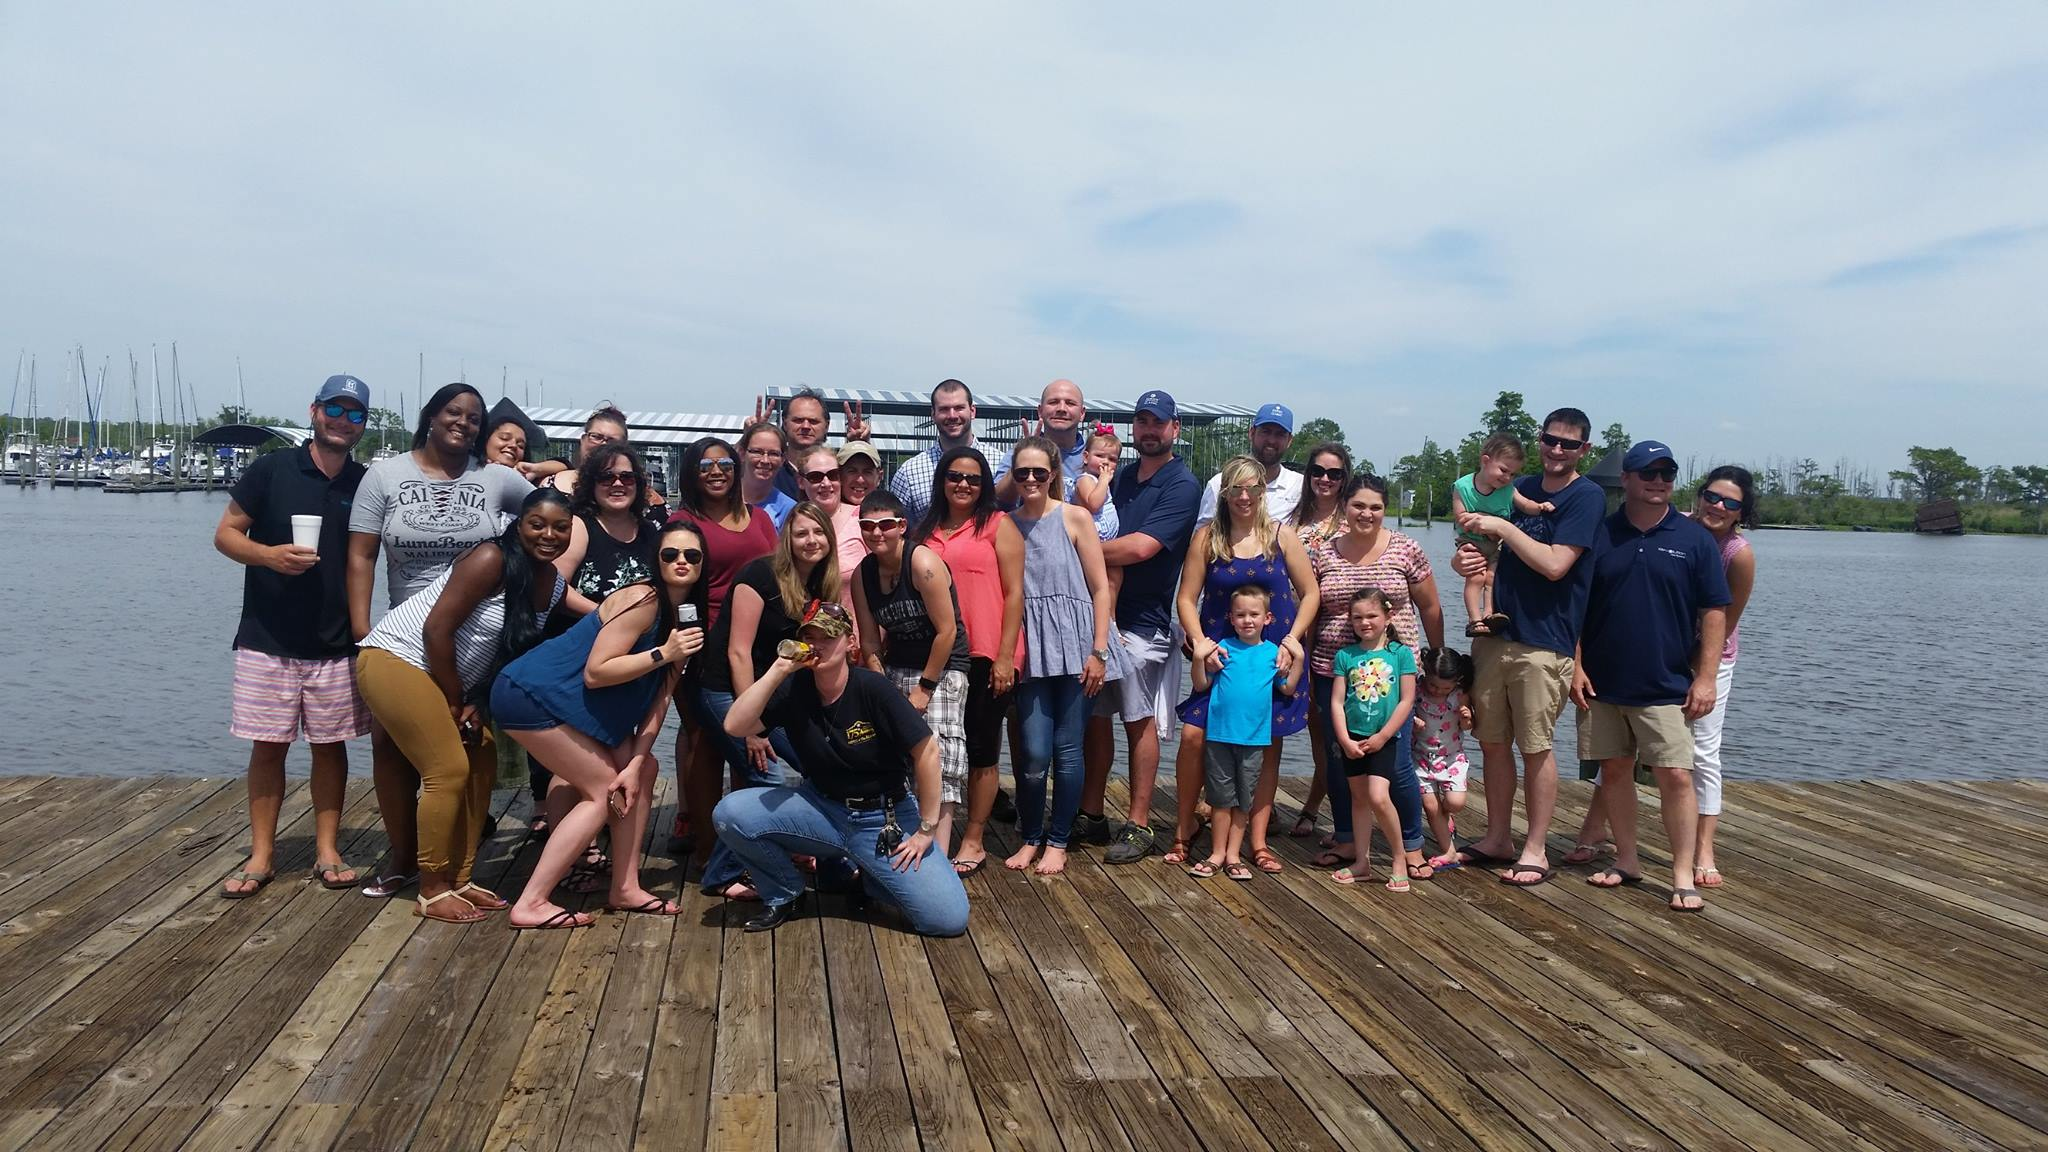 May 11 - We celebrated our birthday by having a blowout on the Tchefuncte river in Madisonville, LA.